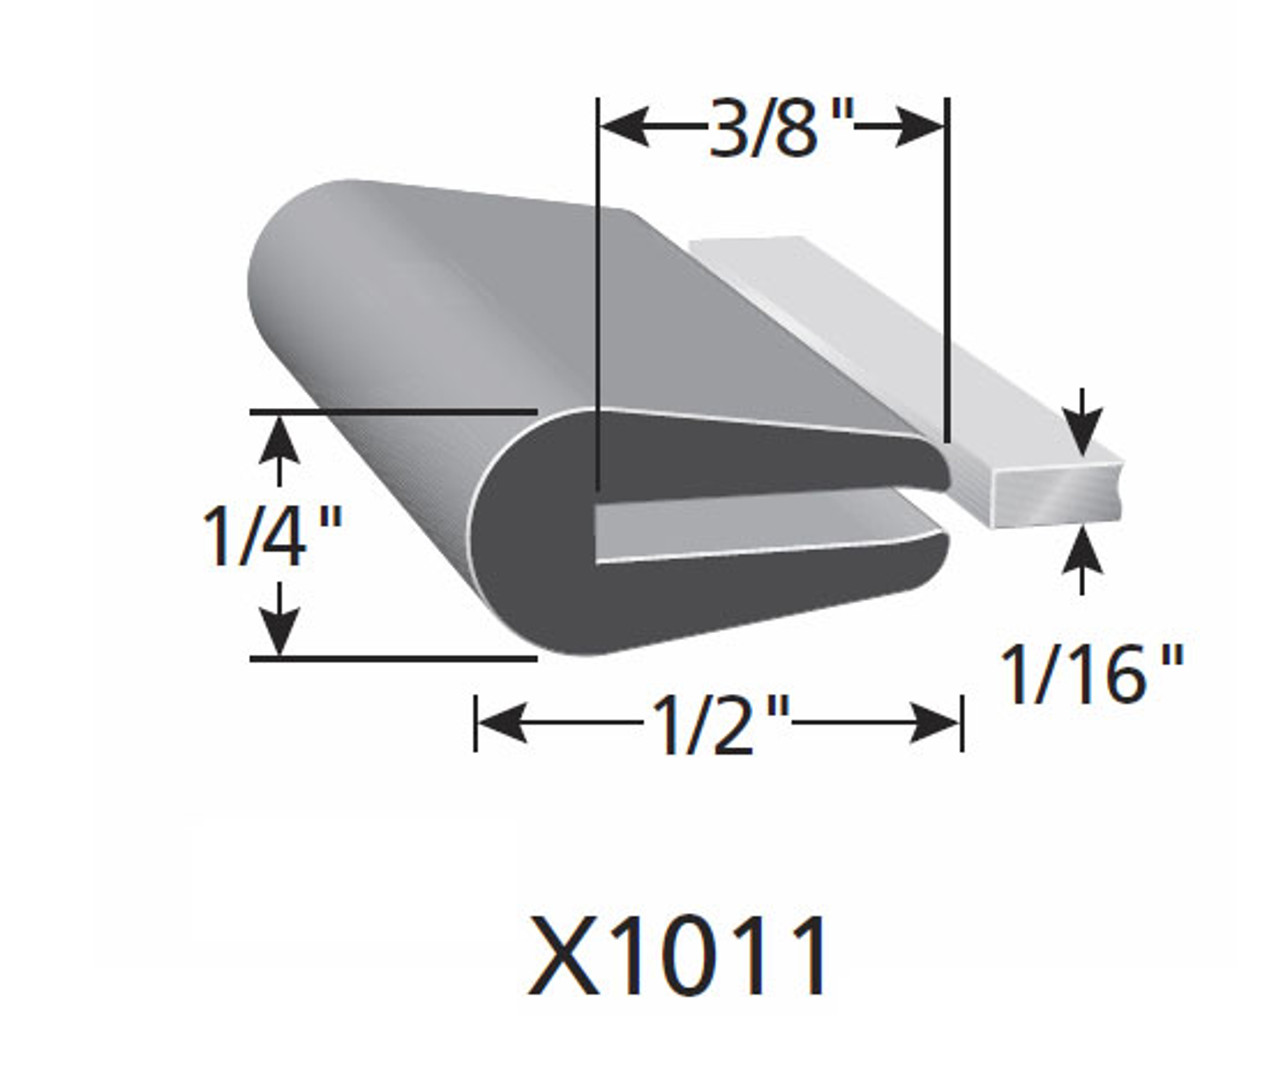 """1/2"""" Tall / Fits up to a 1/16"""" Edge Thickness with a Leg Length of 3/8"""""""